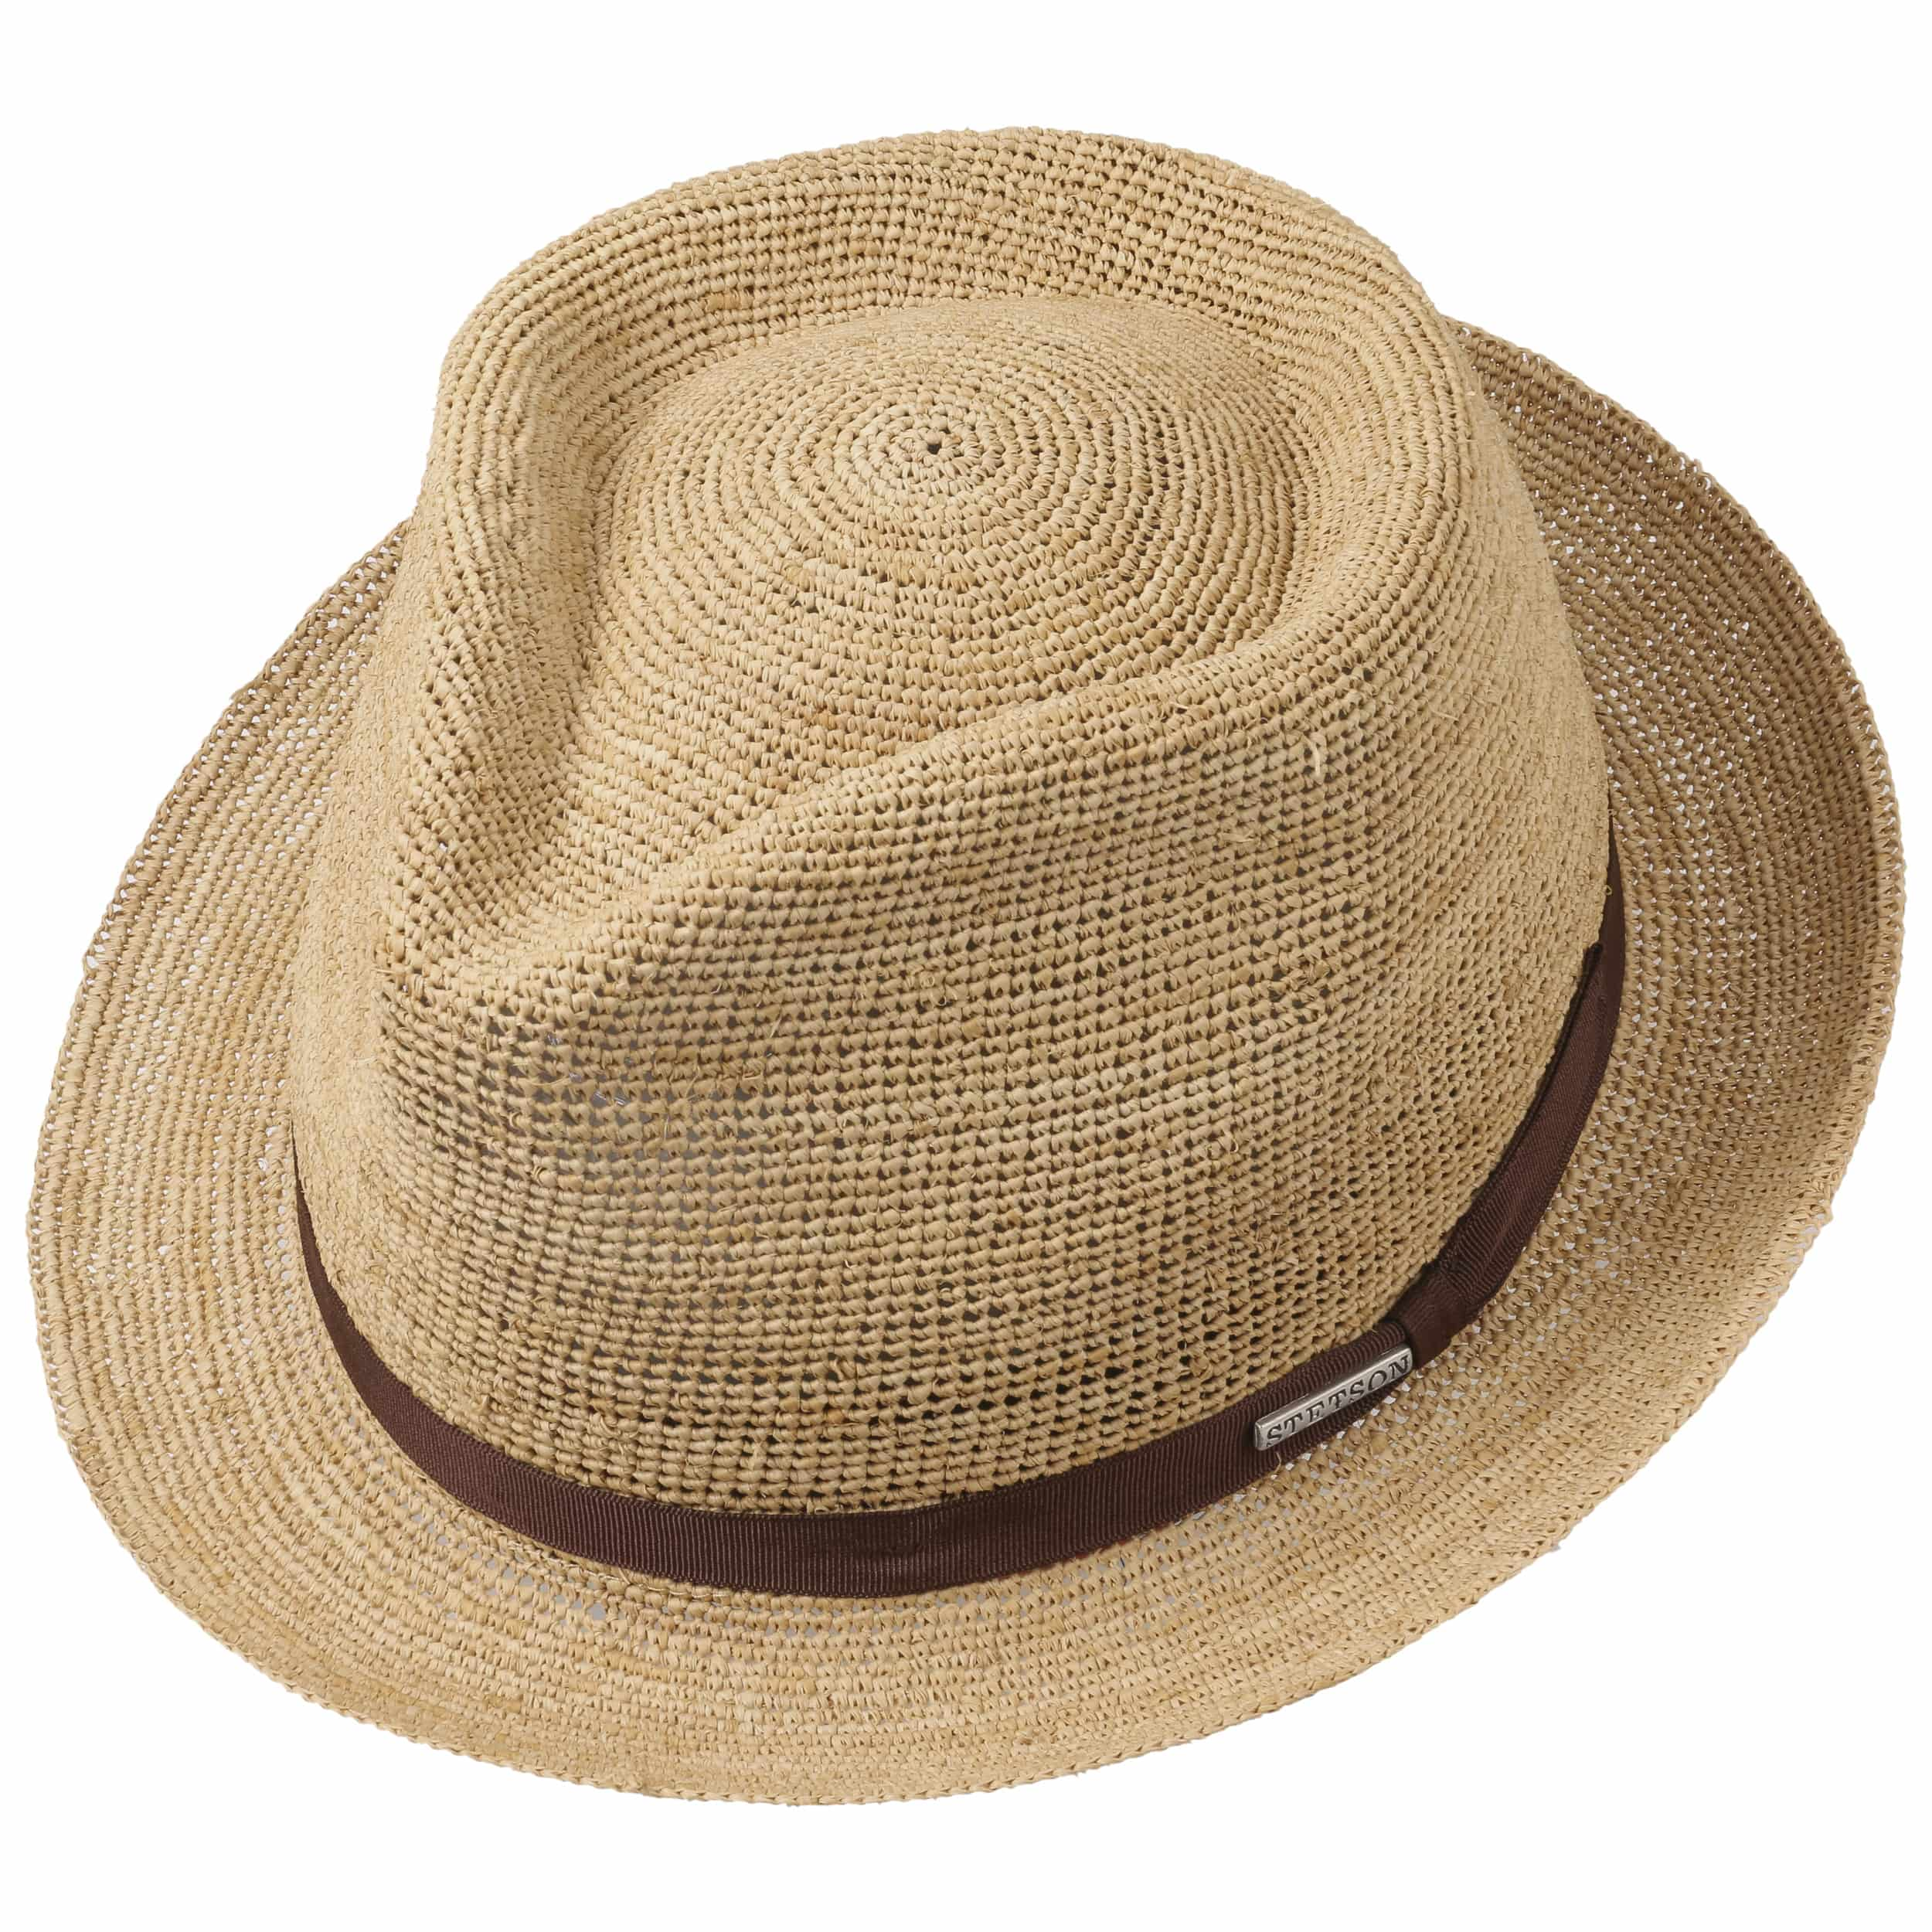 Alpena Player Crochet Raffia Hat by Stetson Sun hats Stetson NRrB1